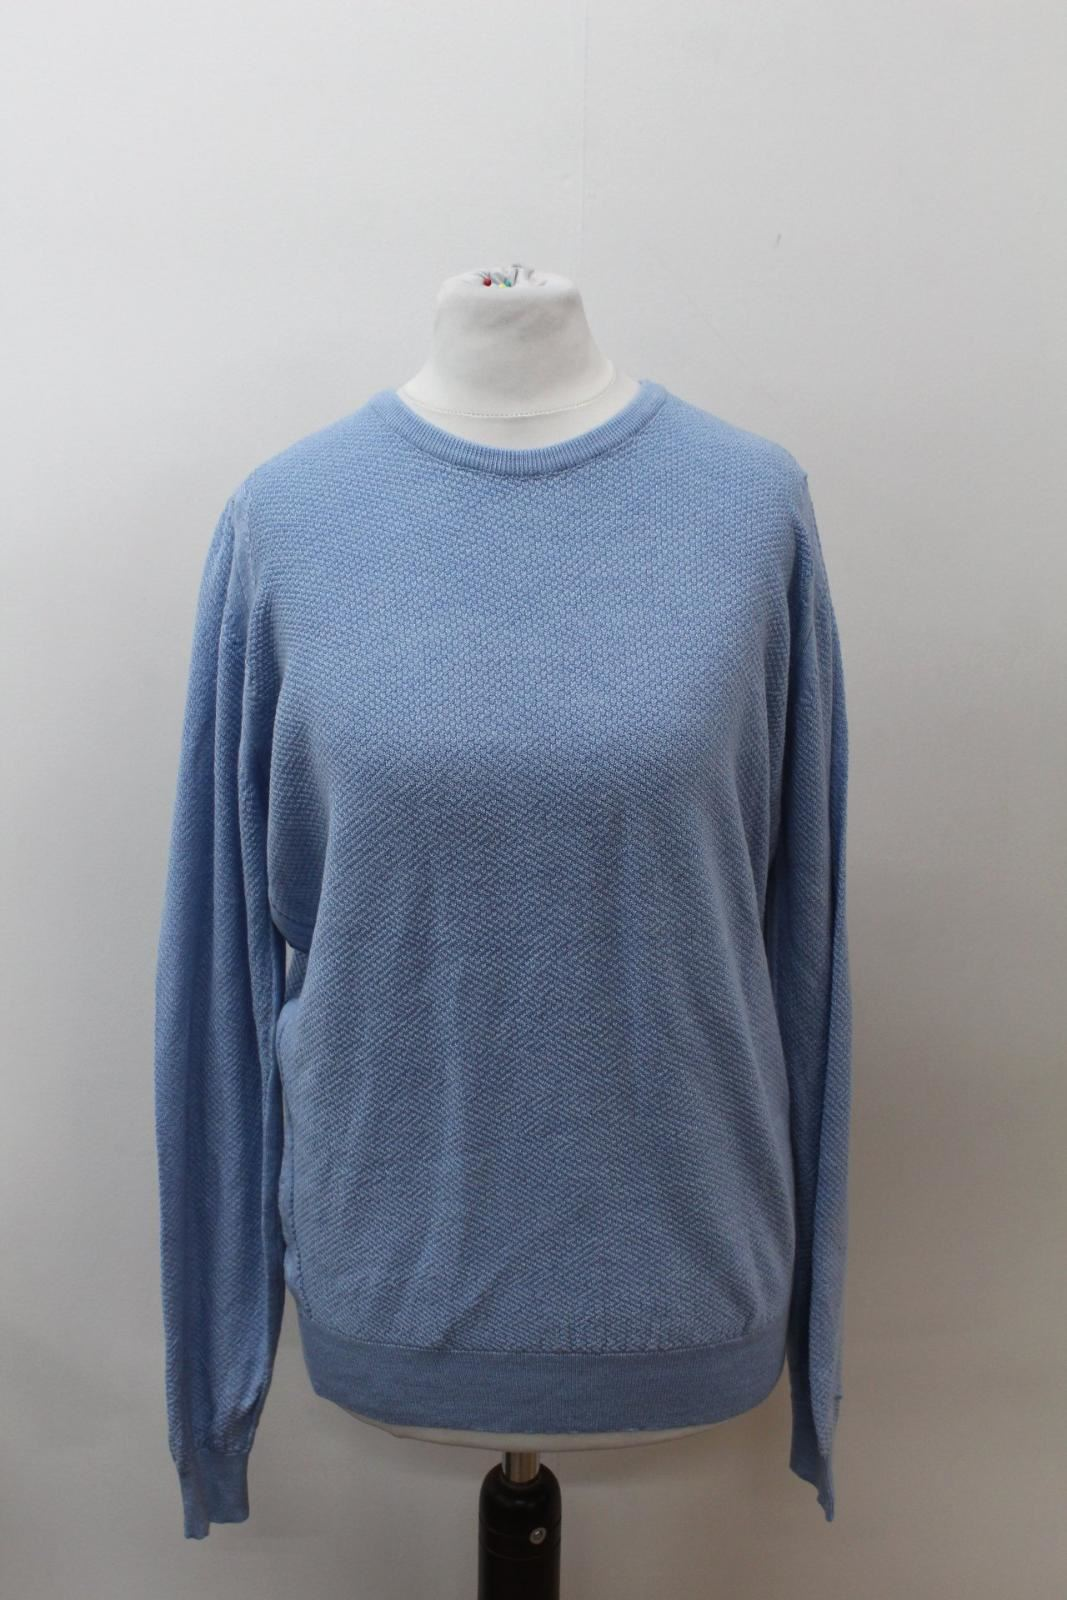 Wool Sleeve Sweater Ladies Long Knit John Size L Blue Smedley Crew Jumper Neck rBtQdhxsC